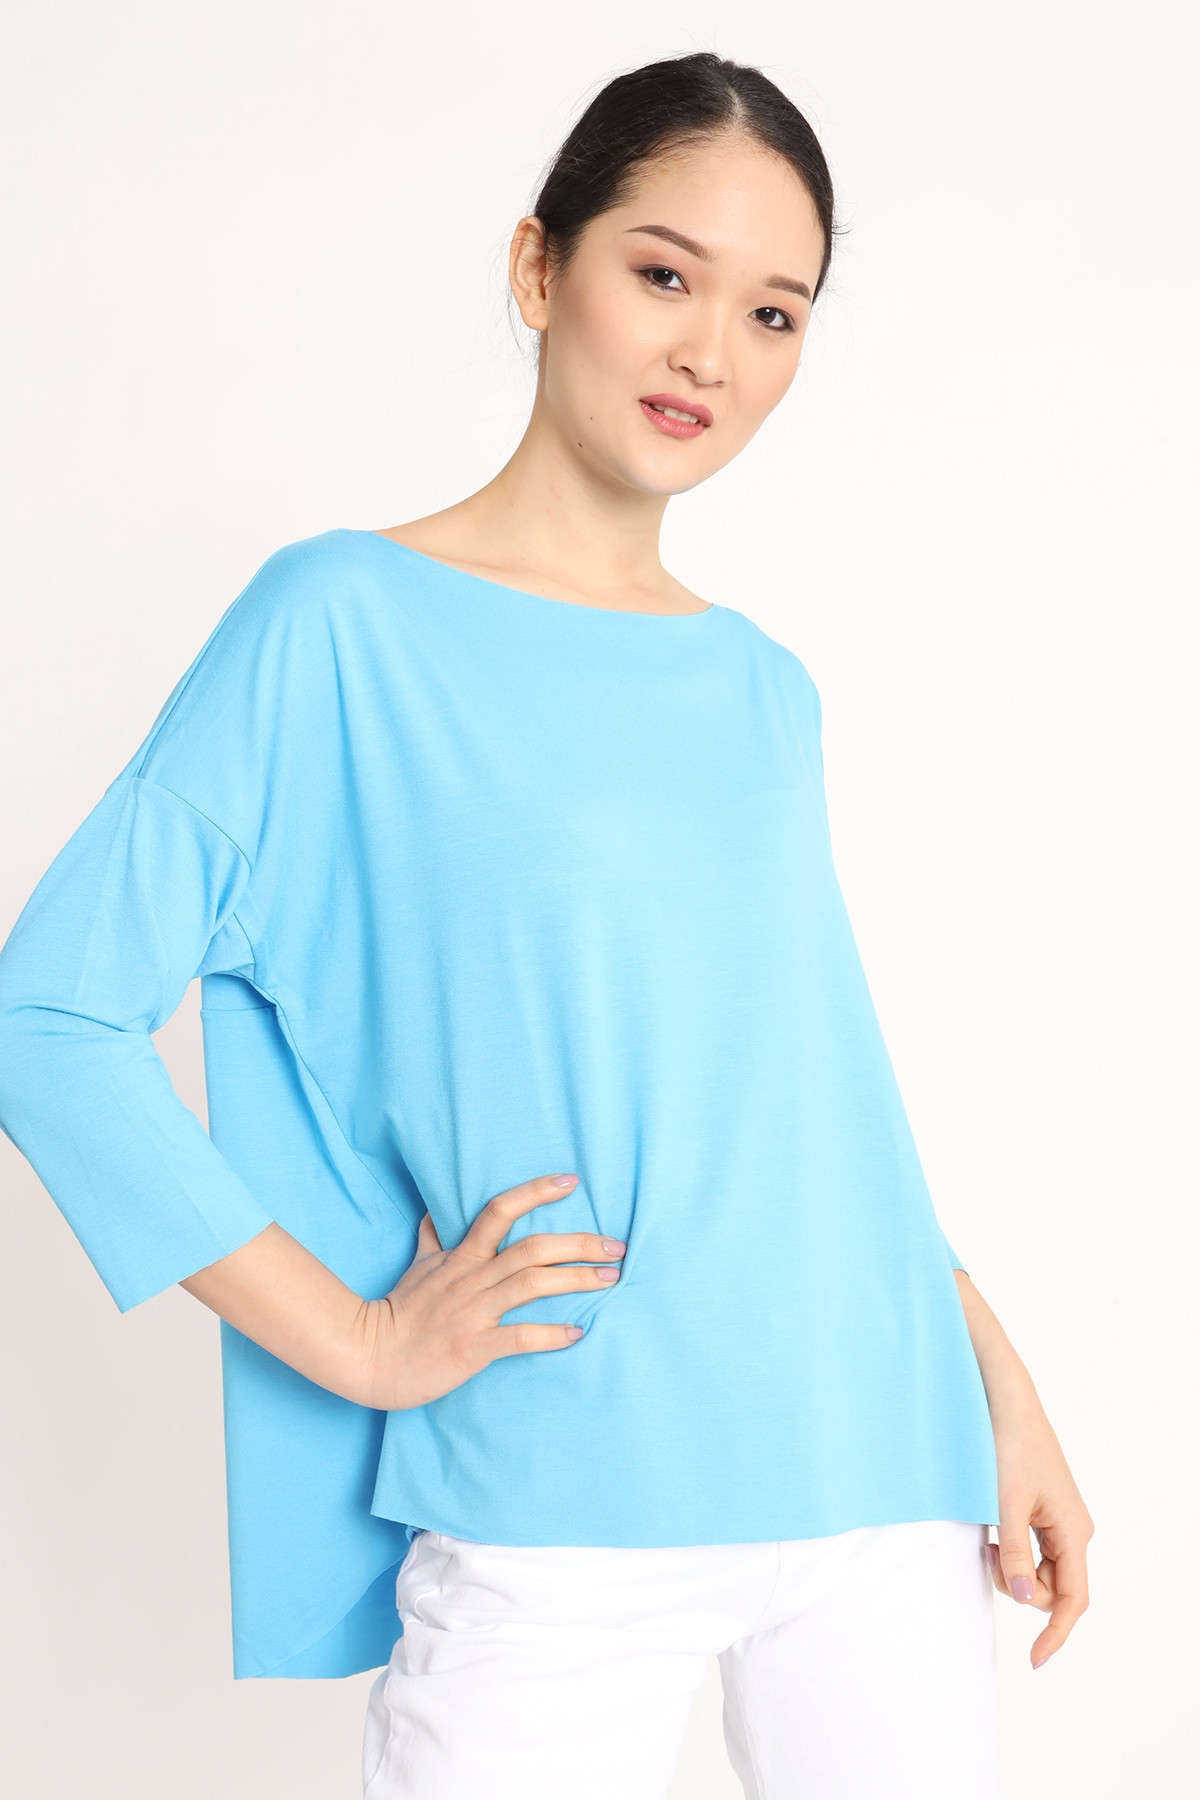 Raw Cut T-Shirt with Drop Shoulder and 3/4 Sleeve